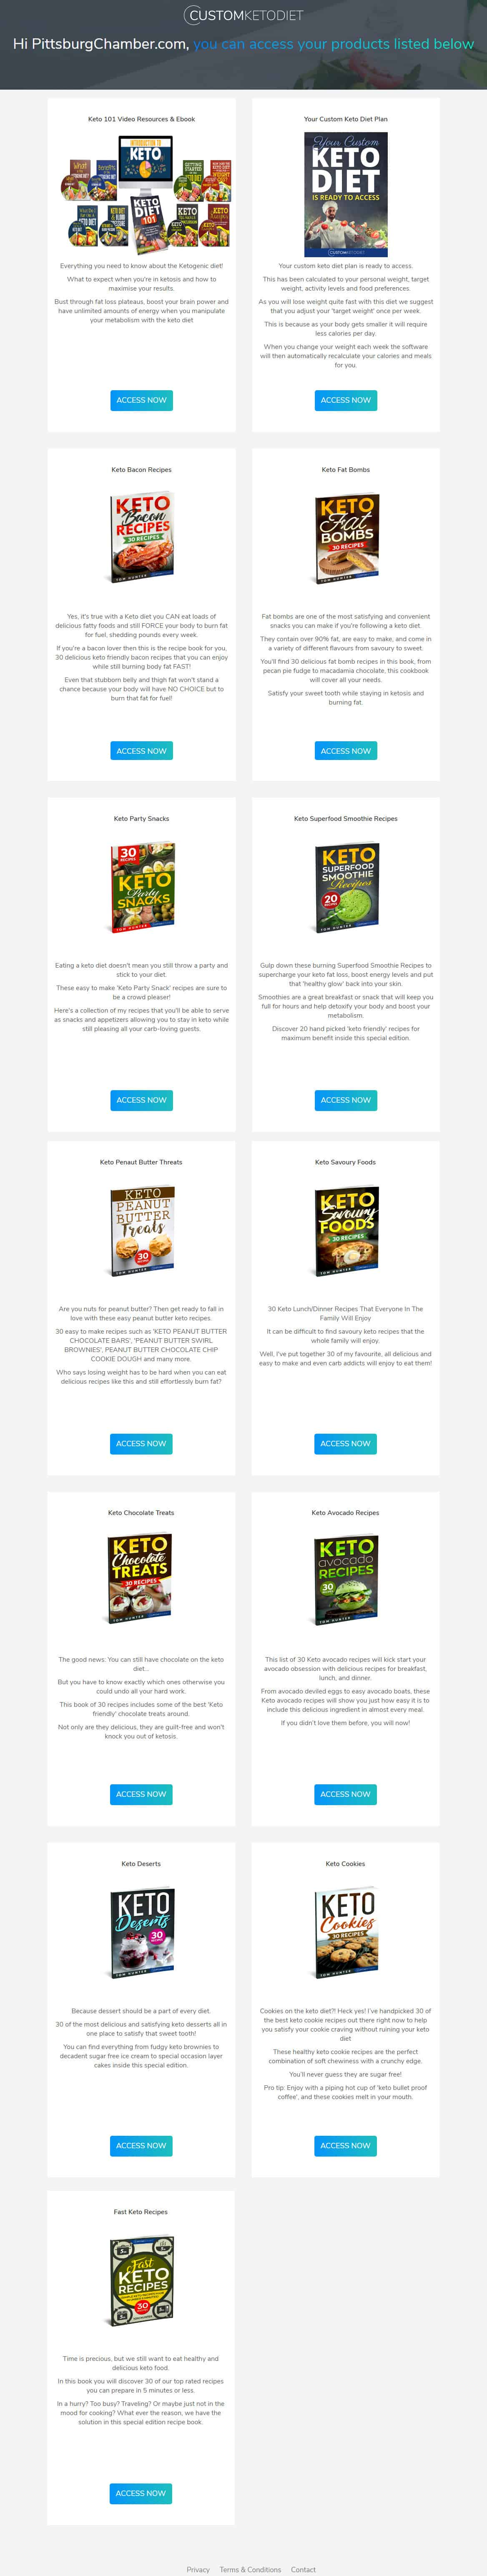 Custom Keto Diet Plan Refurbished Coupons 2020